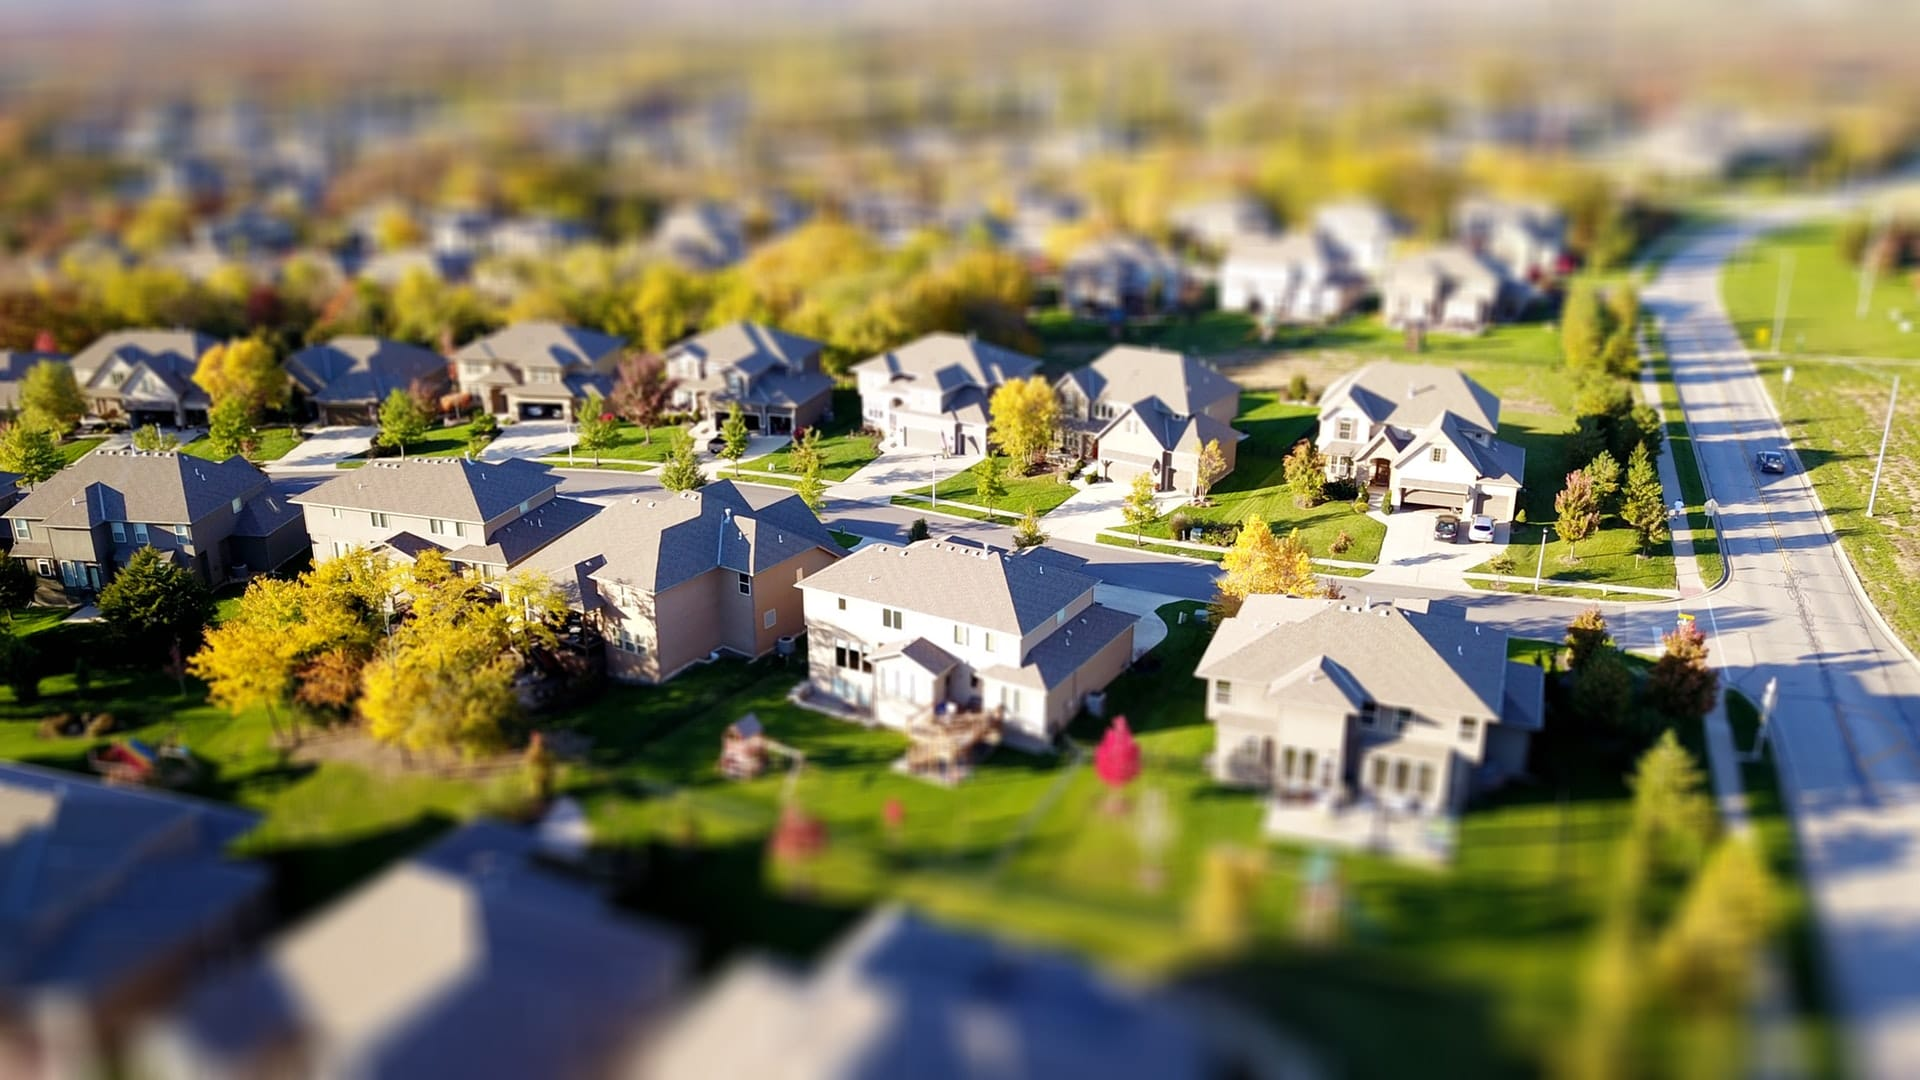 5 Ways Technology is Changing the Real Estate Industry